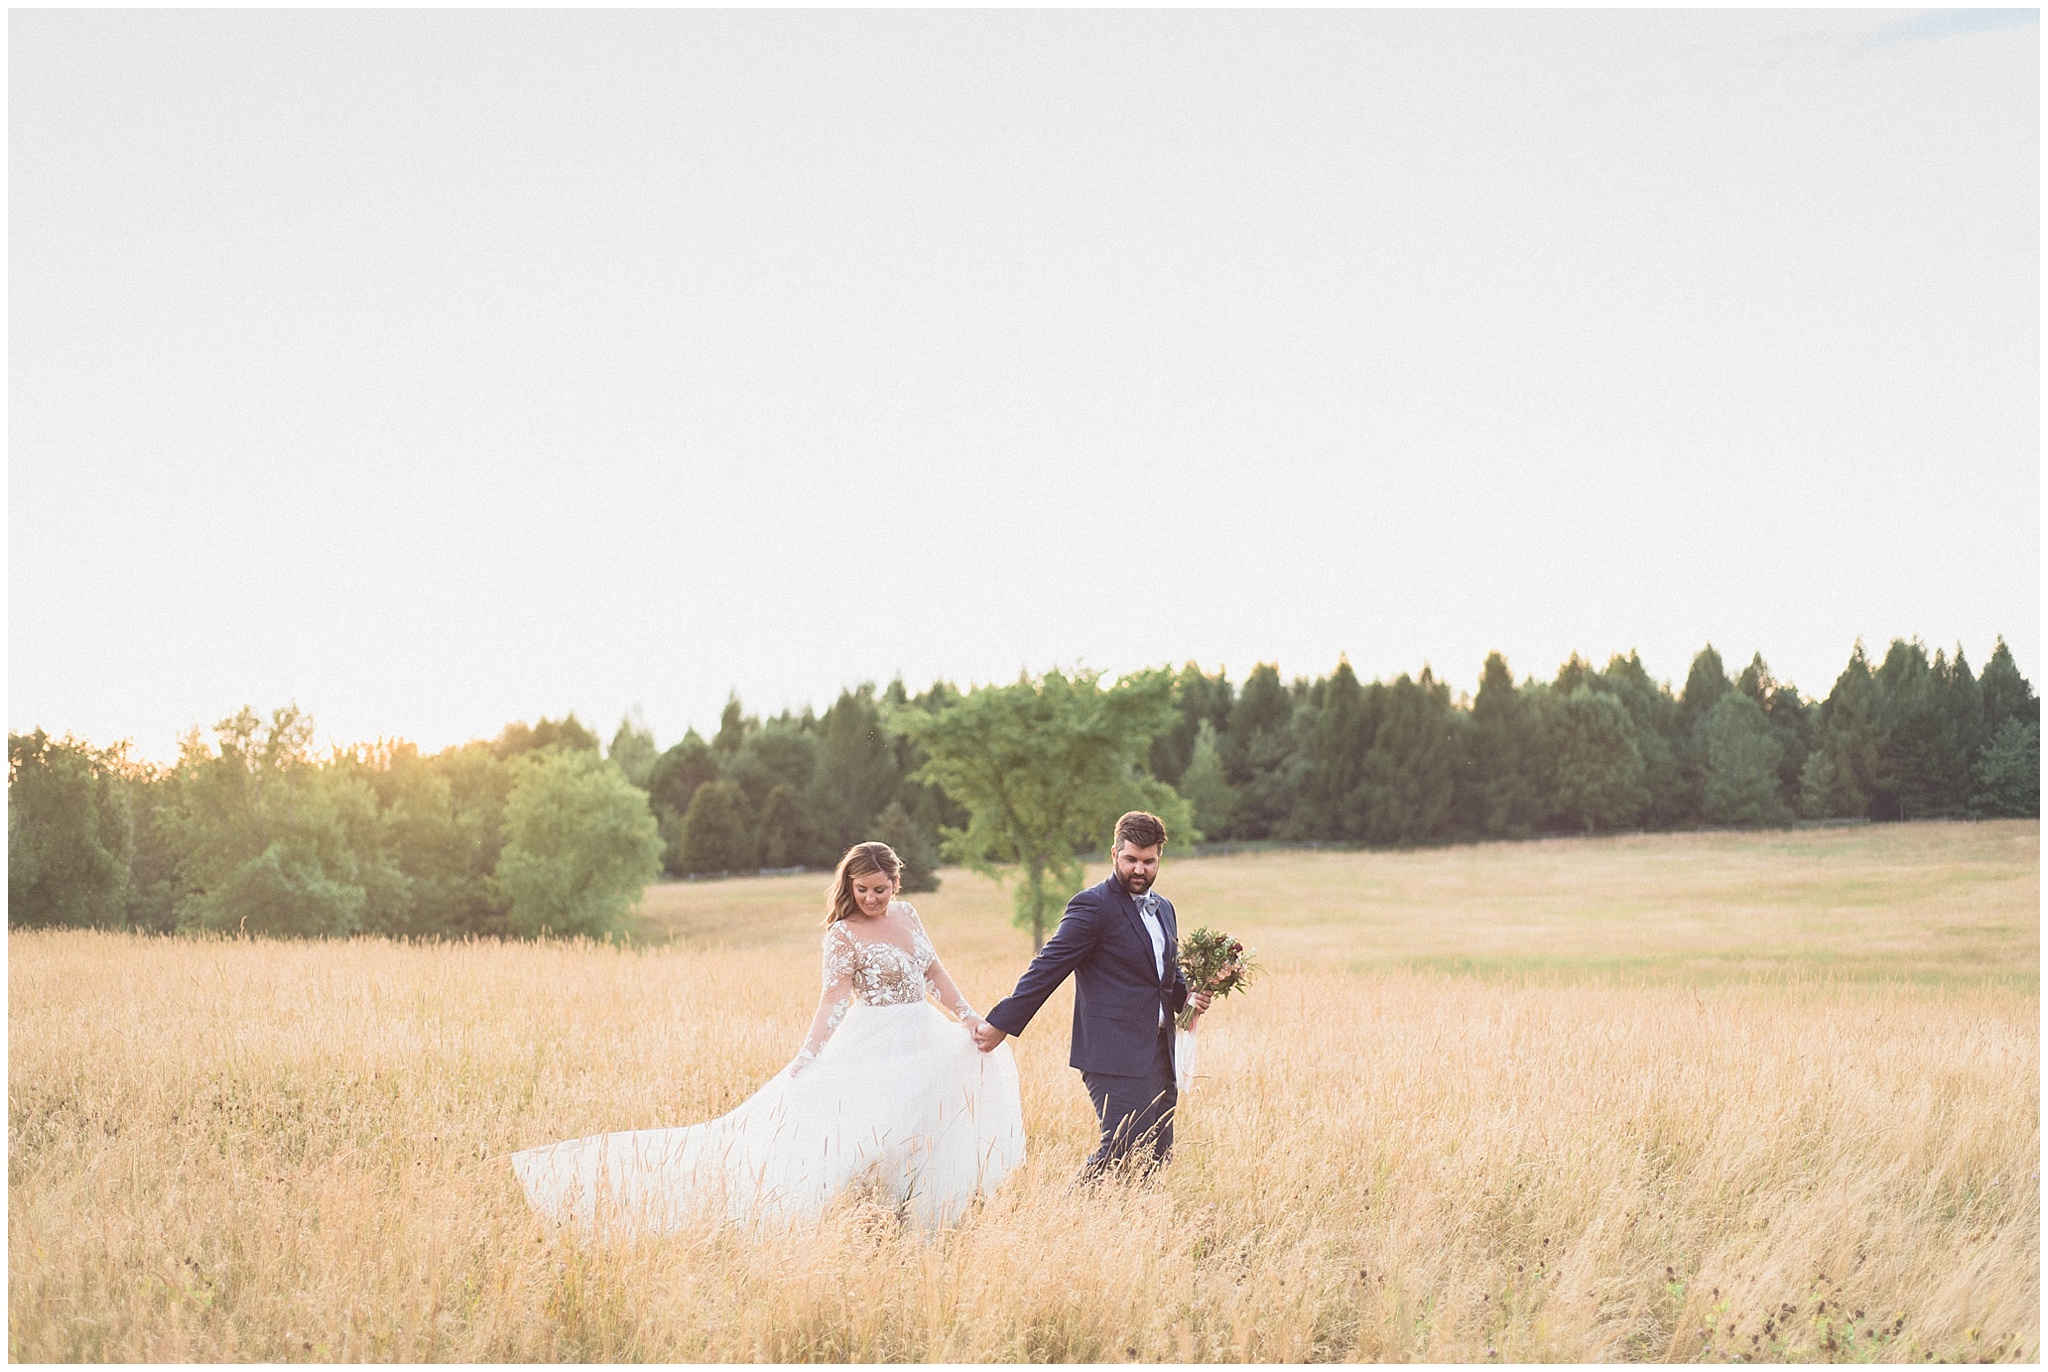 Sunset bride and groom portraits at Tralee Wedding Facility, photographed by Jenn Kavanagh Photography